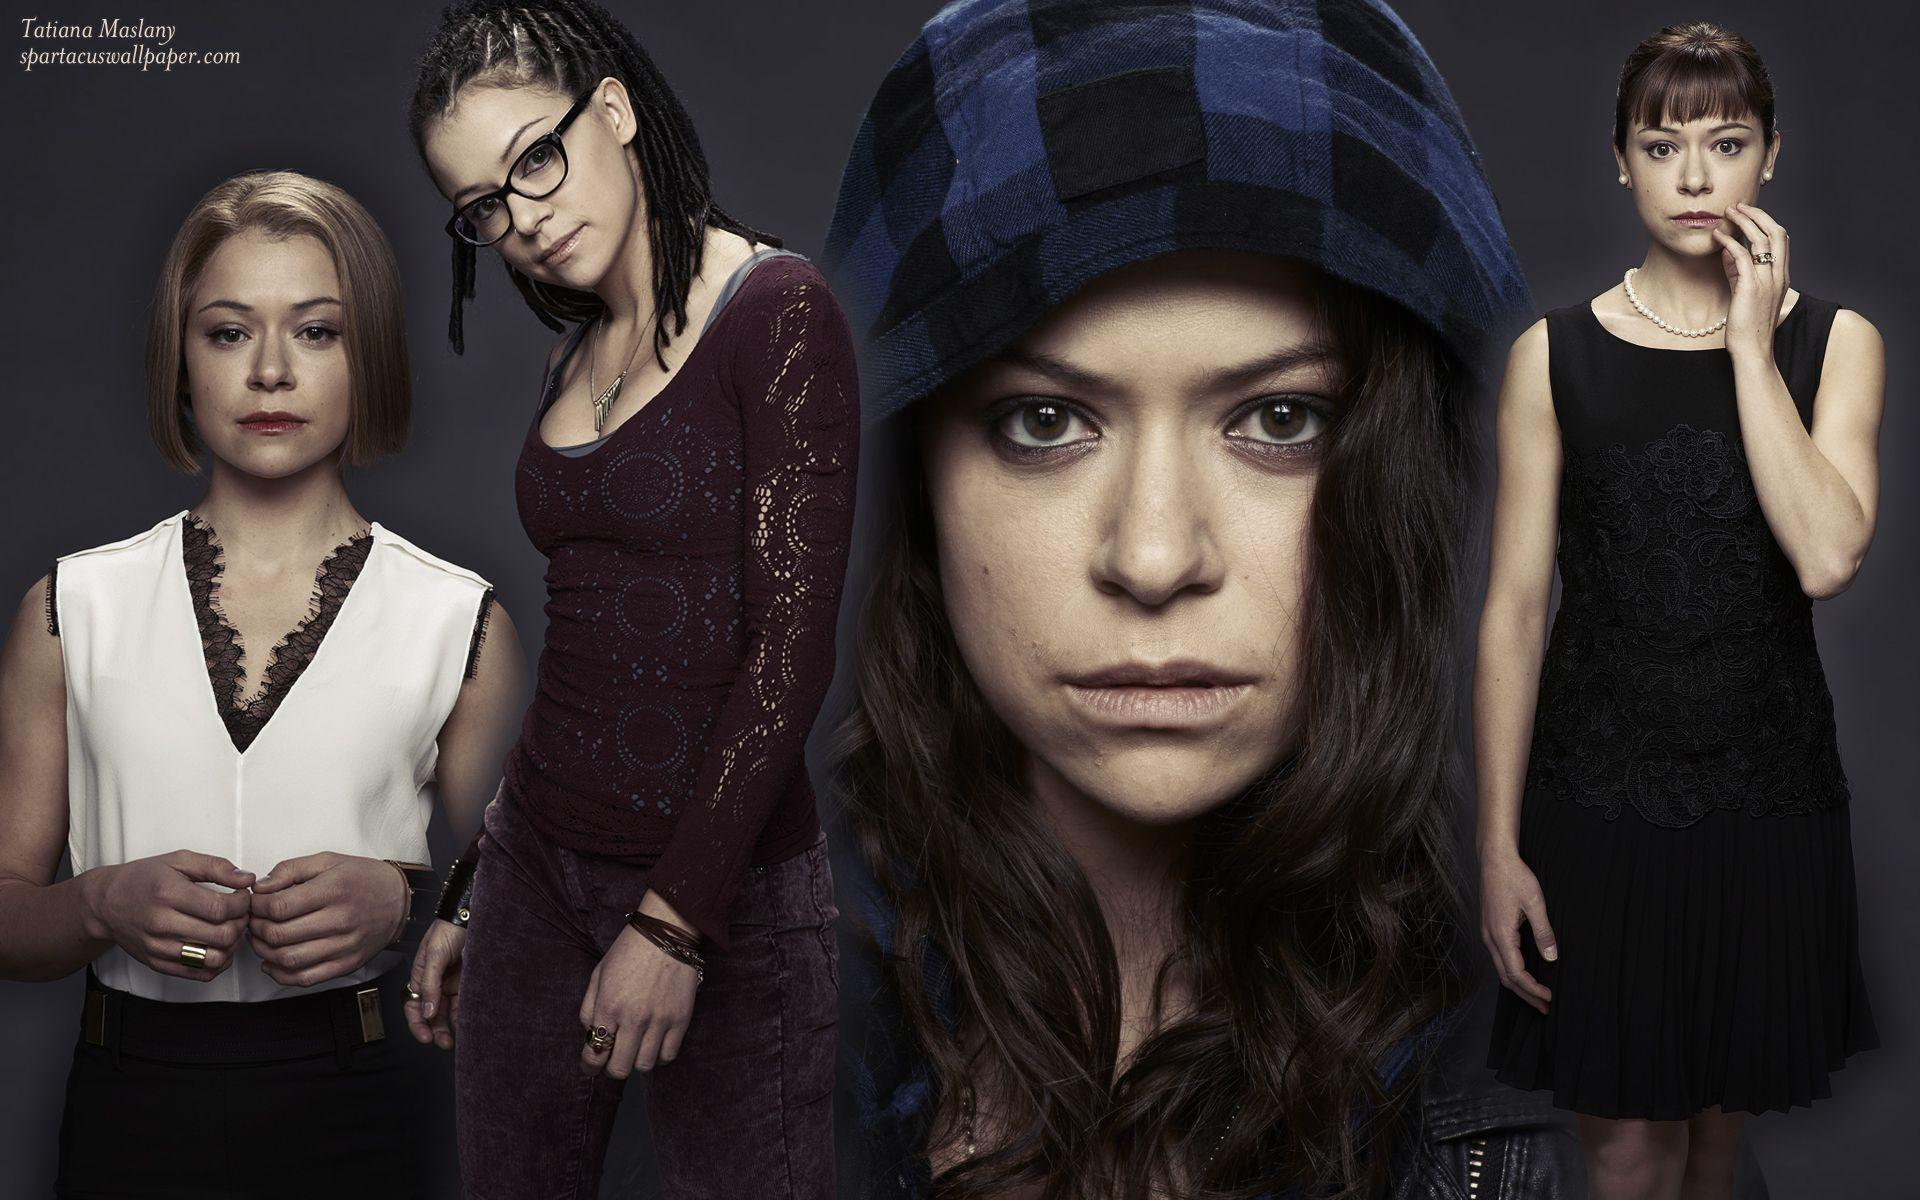 Tatiana Maslany Orphan Black Wallpaper - WallpaperSafari